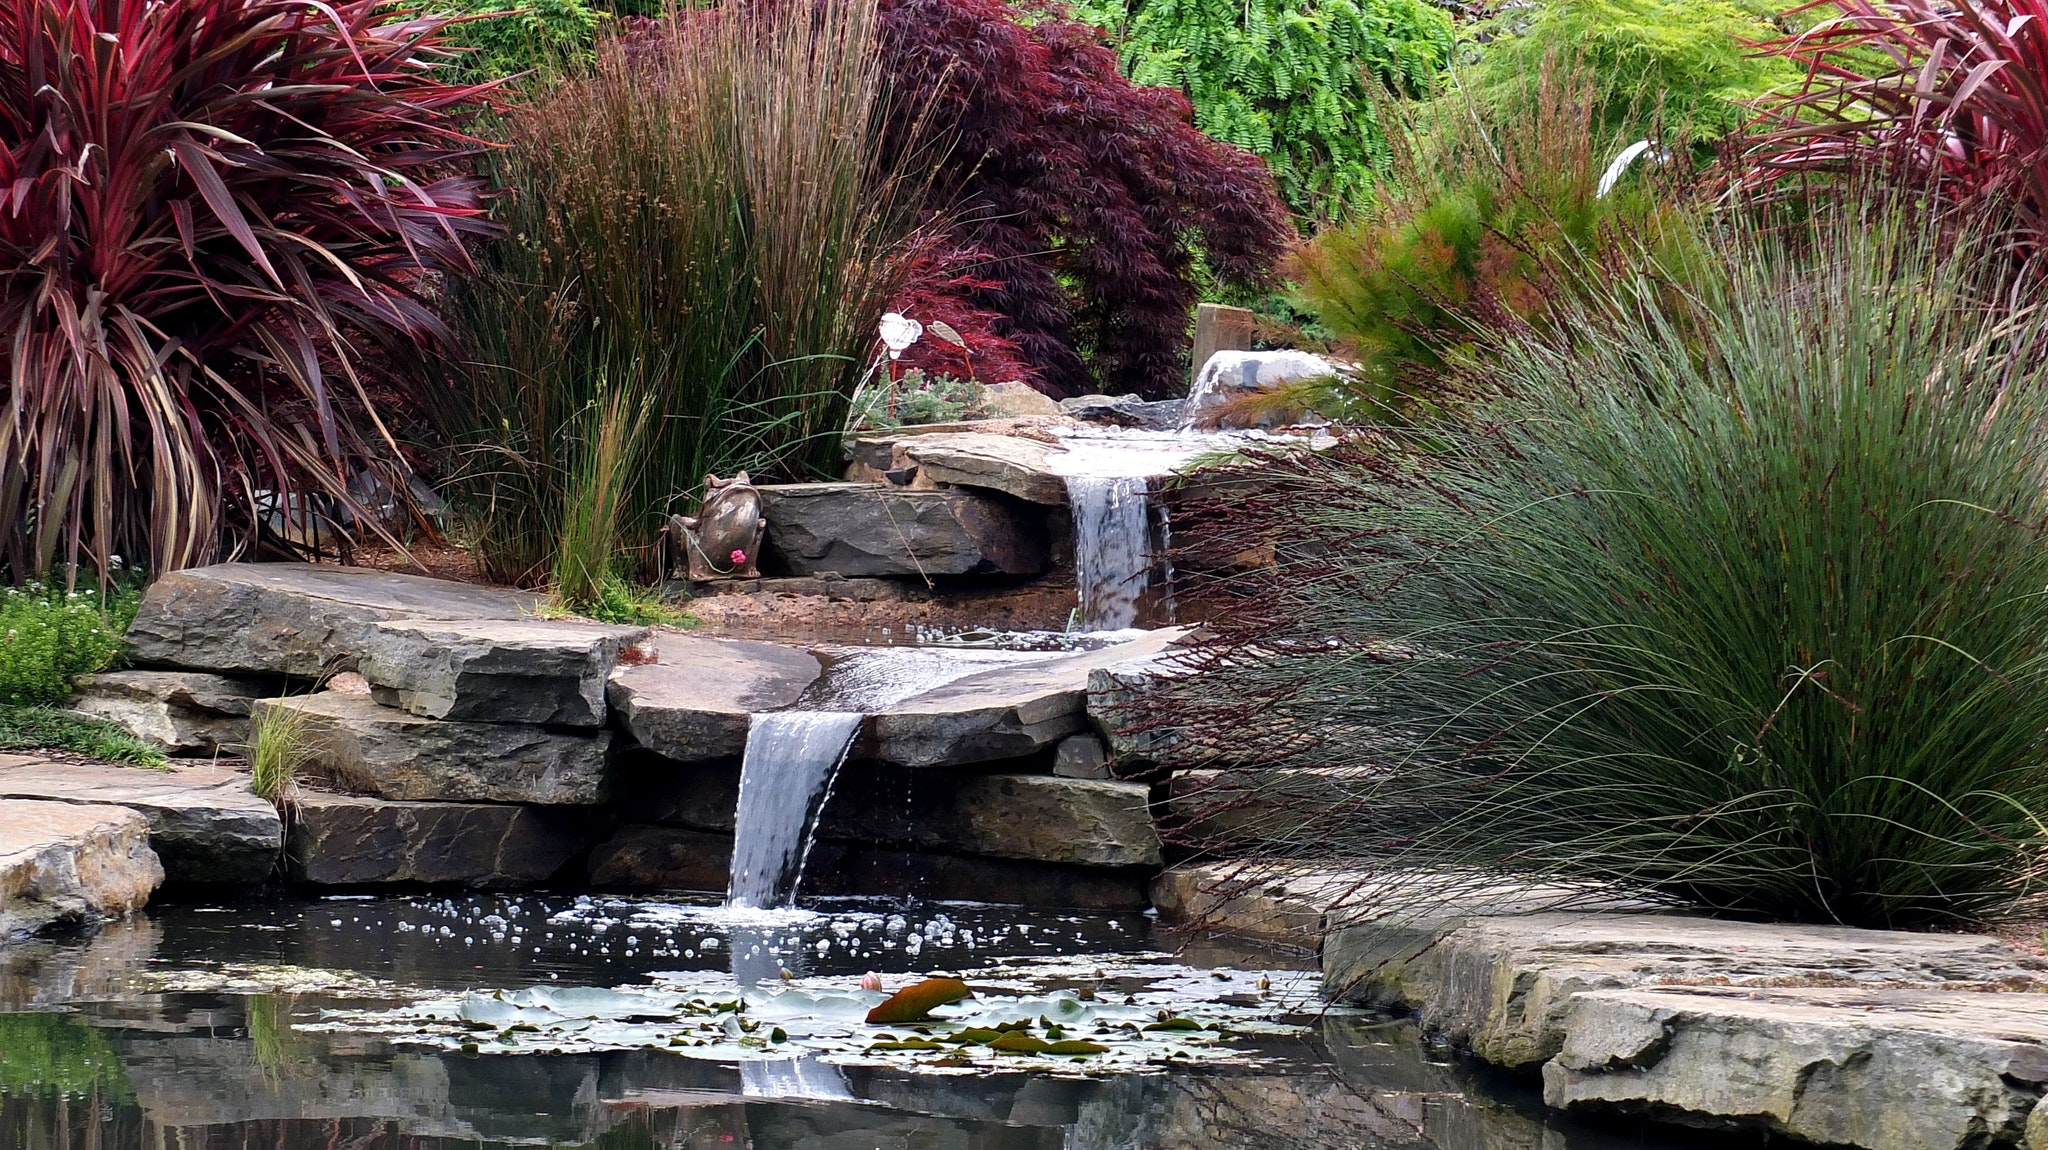 Garden scene with water feature